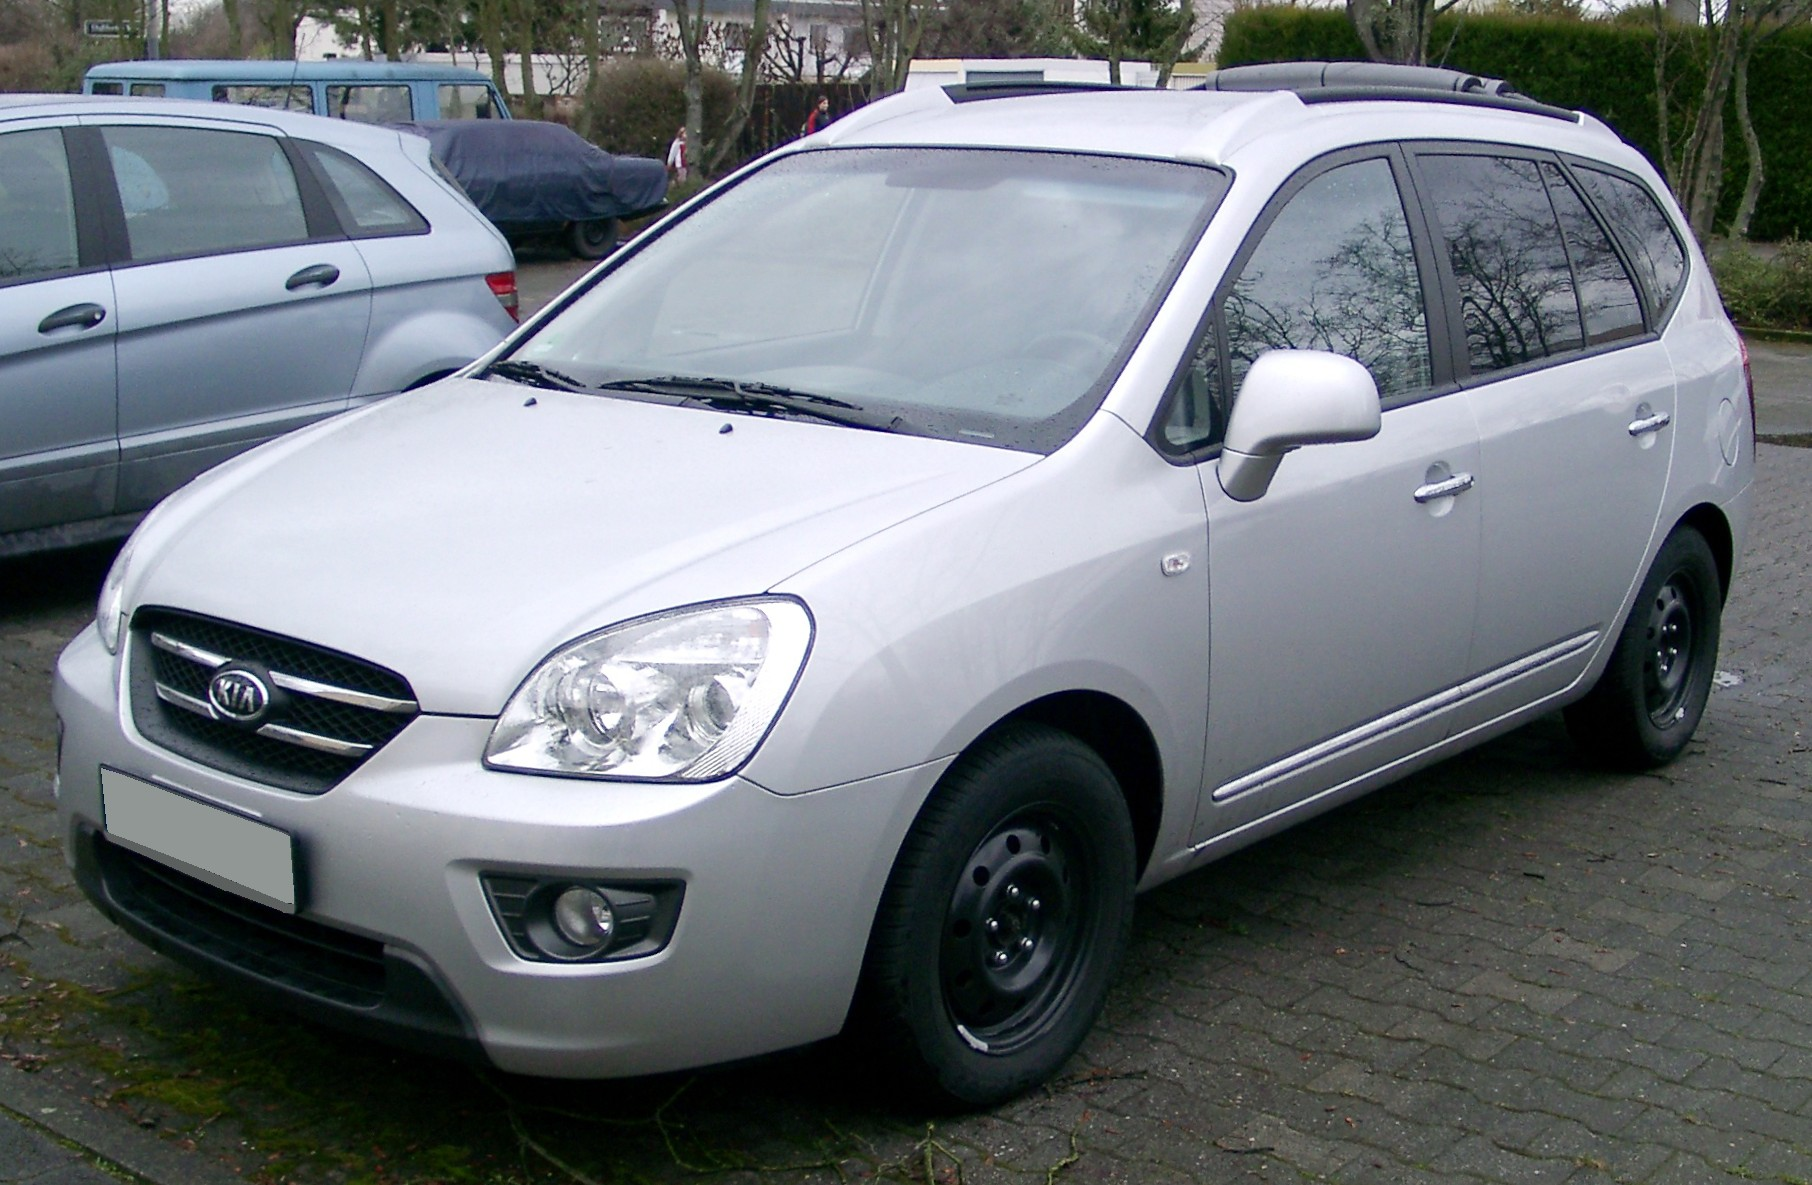 File Kia Carens Silver Front 20080303 Jpg Wikimedia Commons